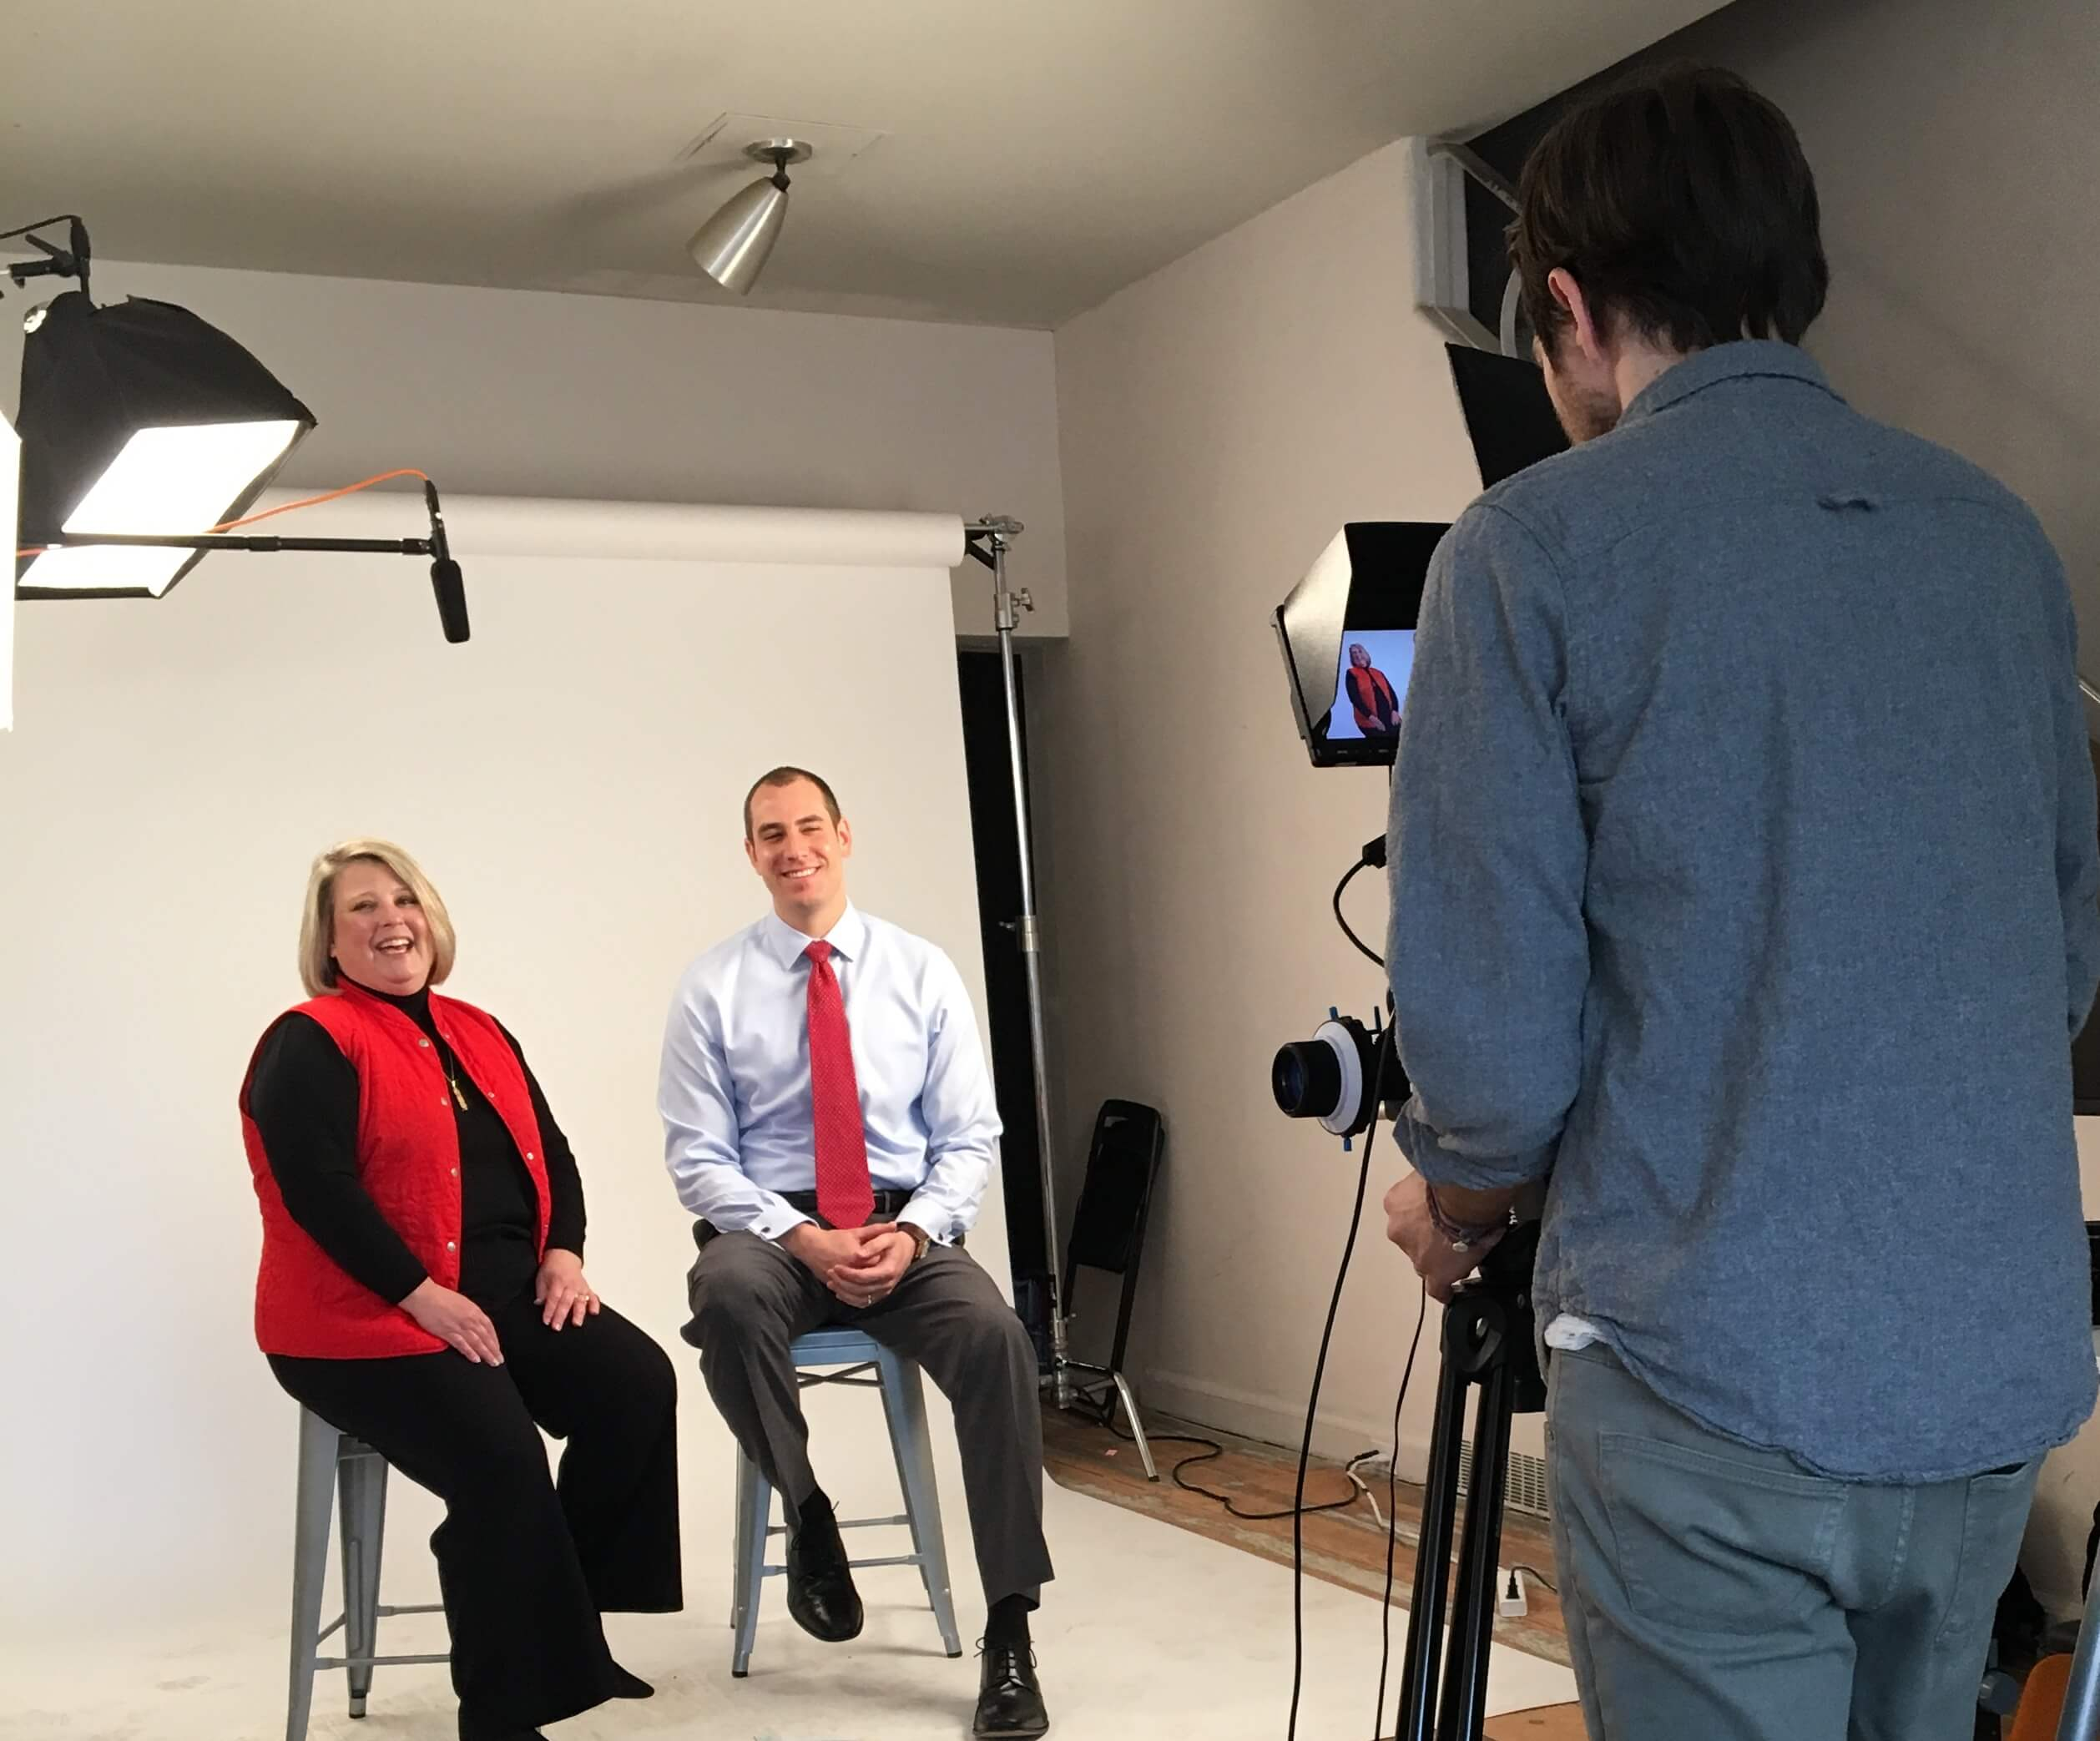 Image: Attorneys Leighty and Ruth being filmed for a video